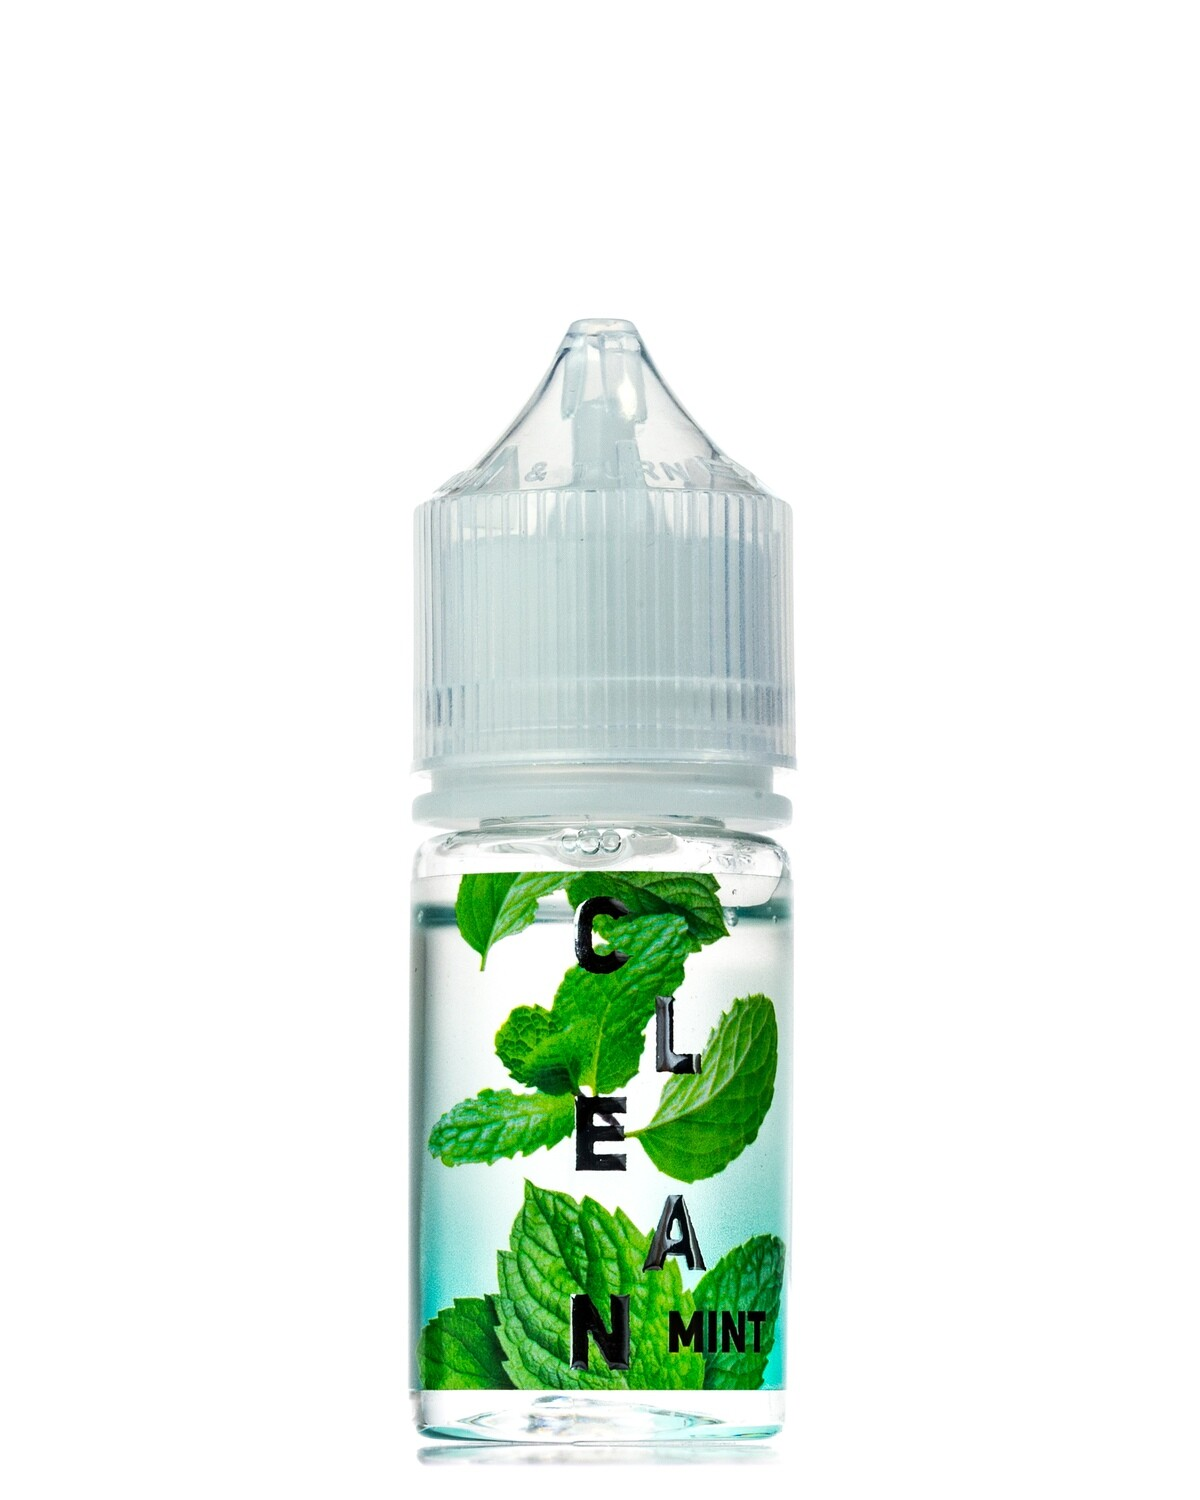 CLEAN BY ДЯДЯ ВОВА: MINT 30ML 0MG